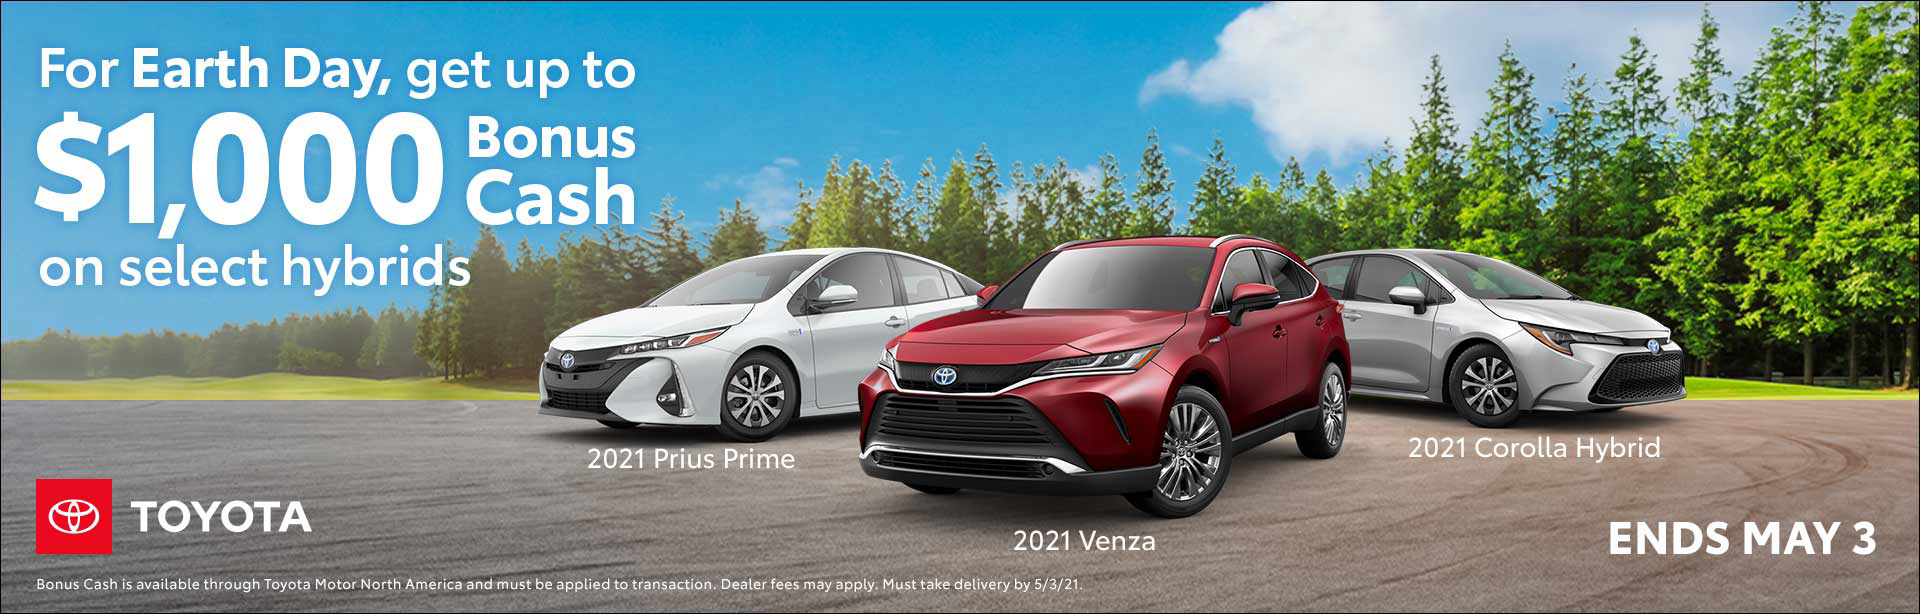 04-21_01_Northern California-April-2021-NorCal-Earth-Day-English_1920x614_5a16_Corolla-Hybrid-Prius-Prime-Venza_R_xta.jpeg